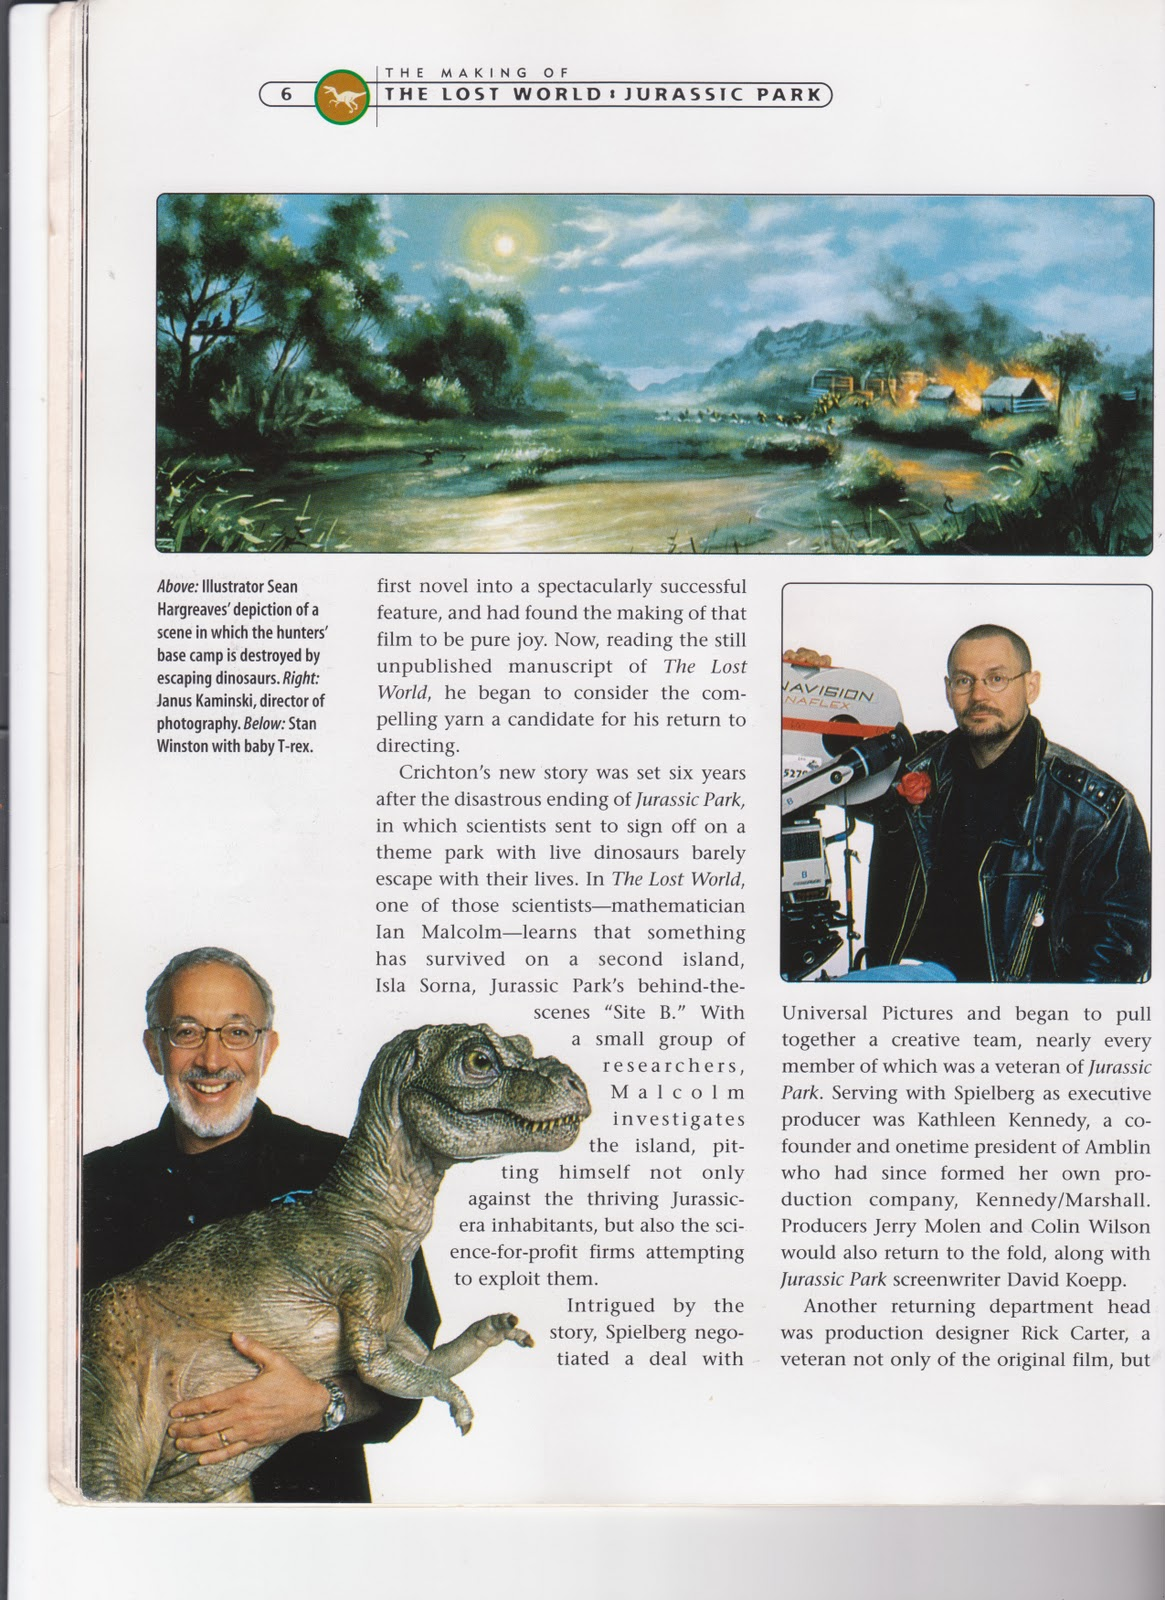 The Making Of Where Do Little Spiders: Max's Blog: Some Scans From The Jurassic Park Making Of Books